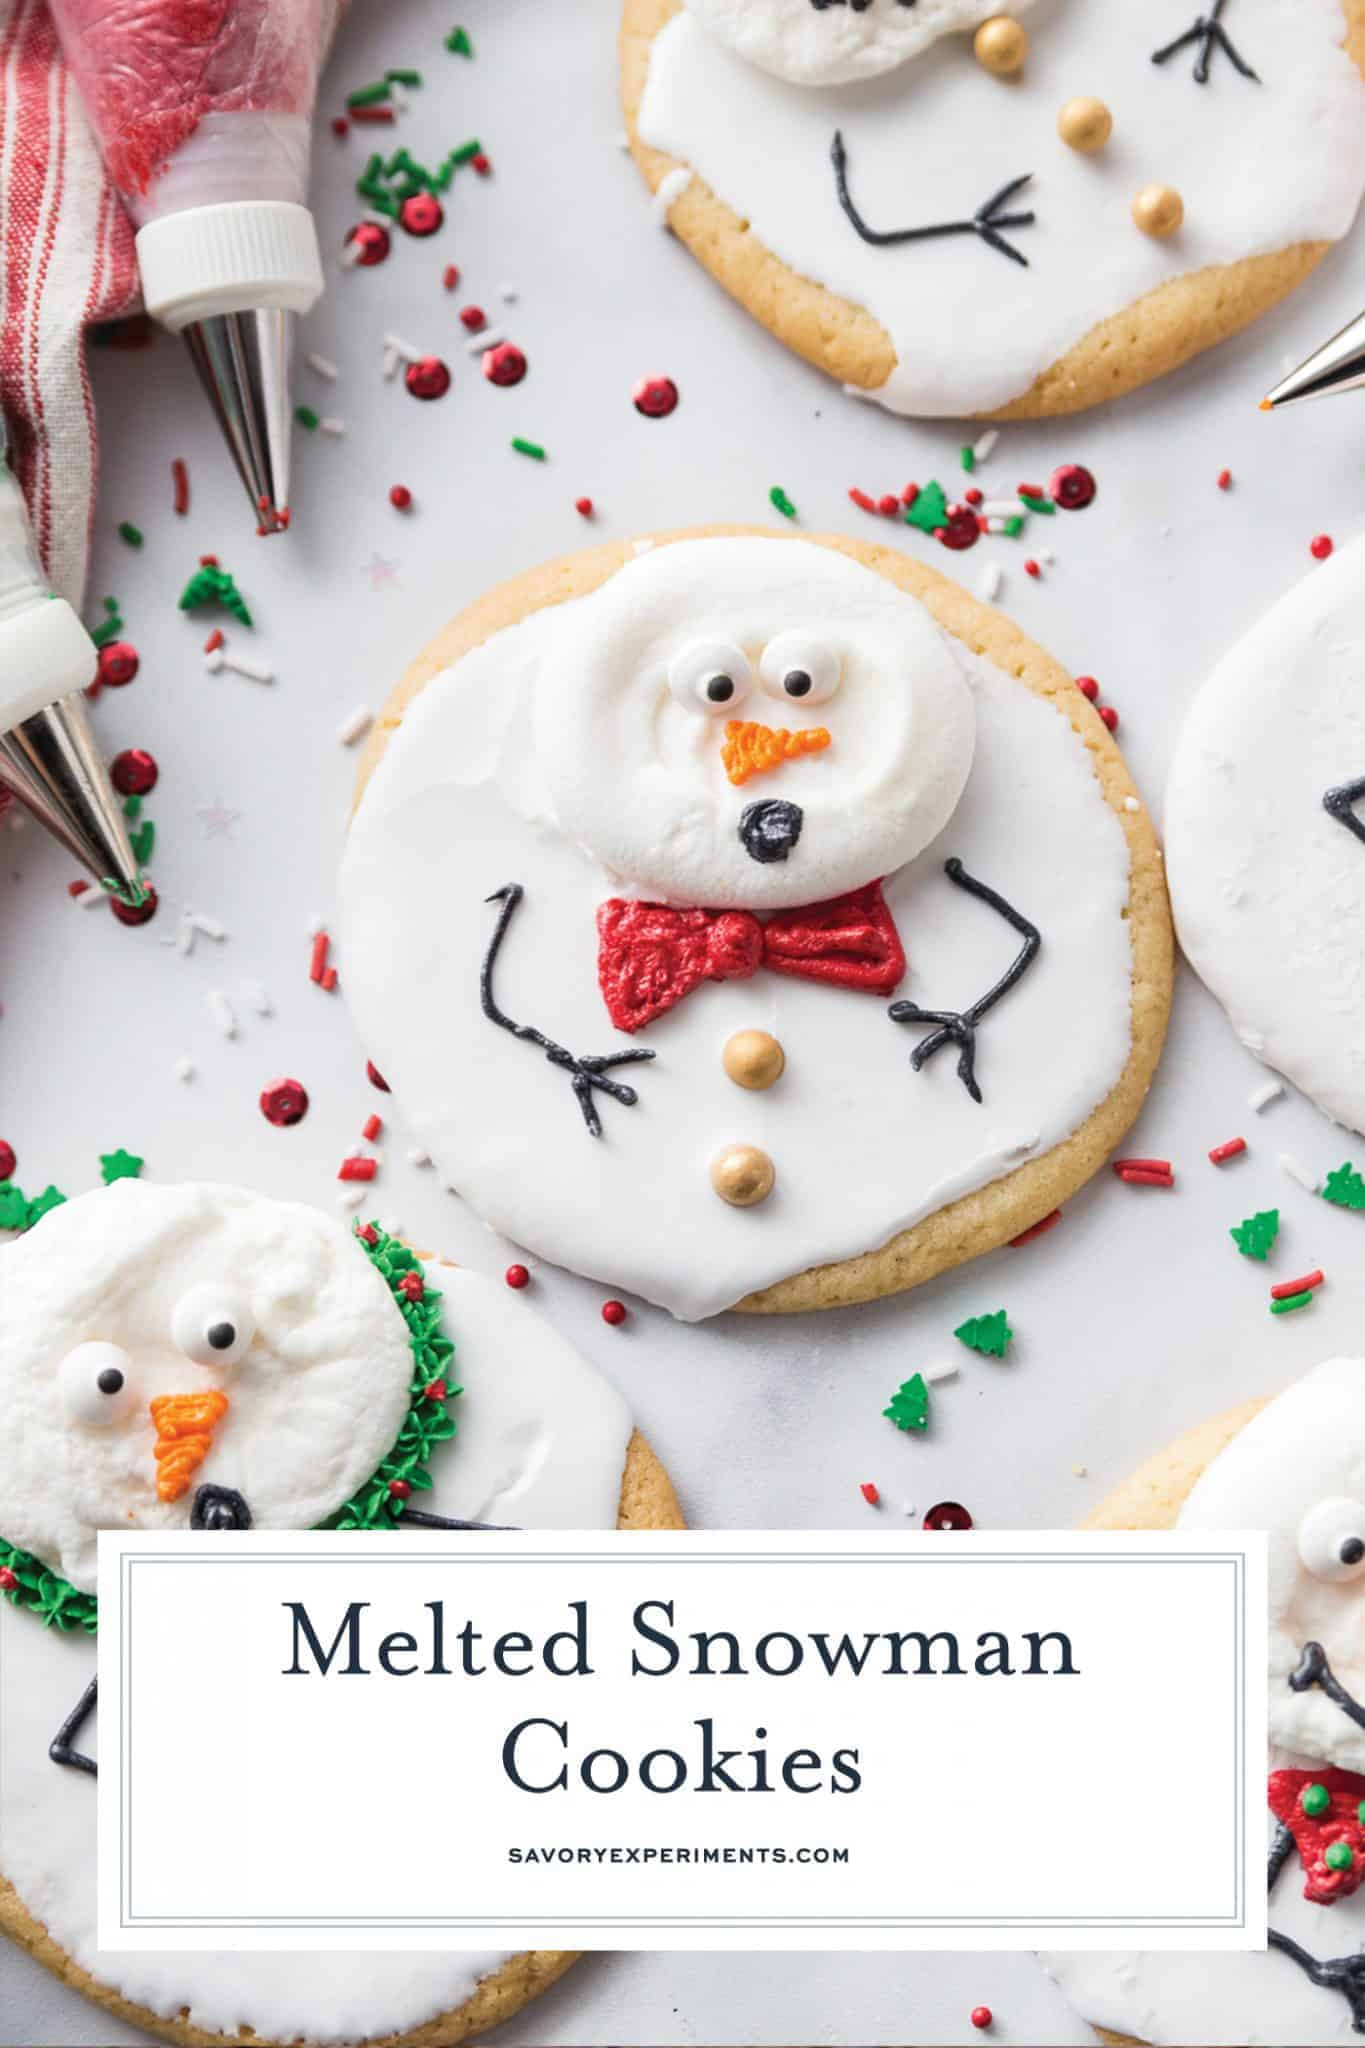 Super easy and fun to decorate, Melted Snowman Cookies are great for a children's project on a cold winter day. The cutest Christmas cookies ever!  #meltedsnowmancookies #meltingsnowmen #easychristmascookies www.savoryexperiments.com